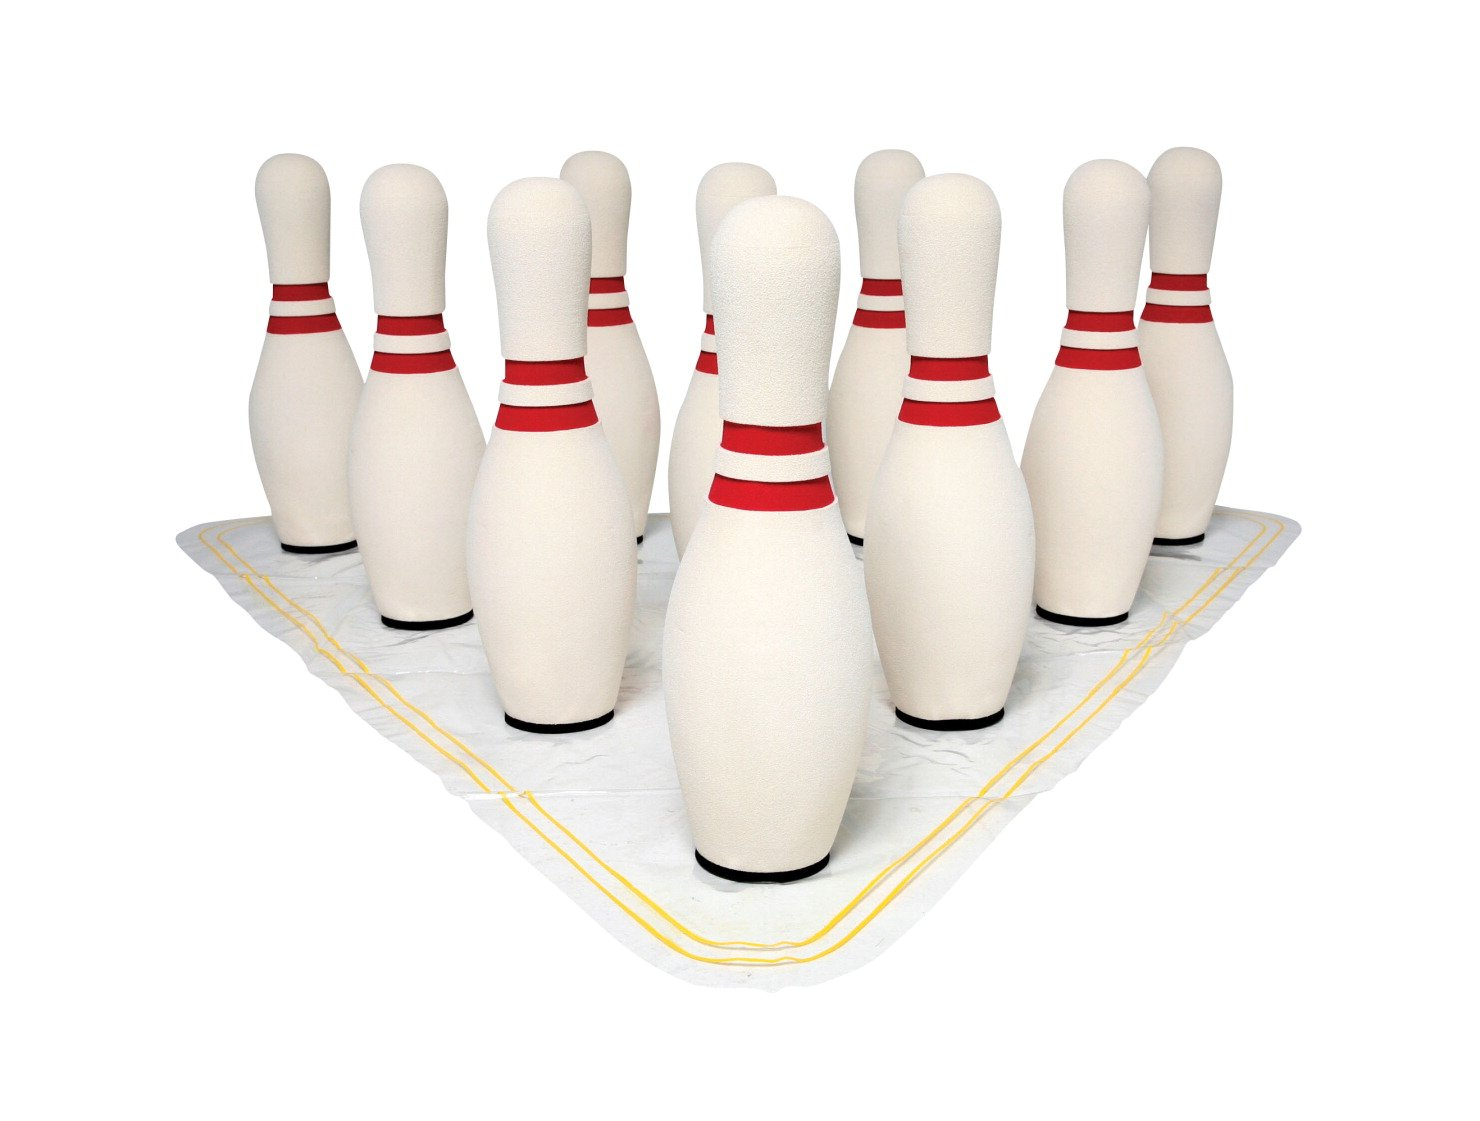 Sportime UltraFoam Bowling Pin Set with Set up Mat - 15 Inch by Sportime